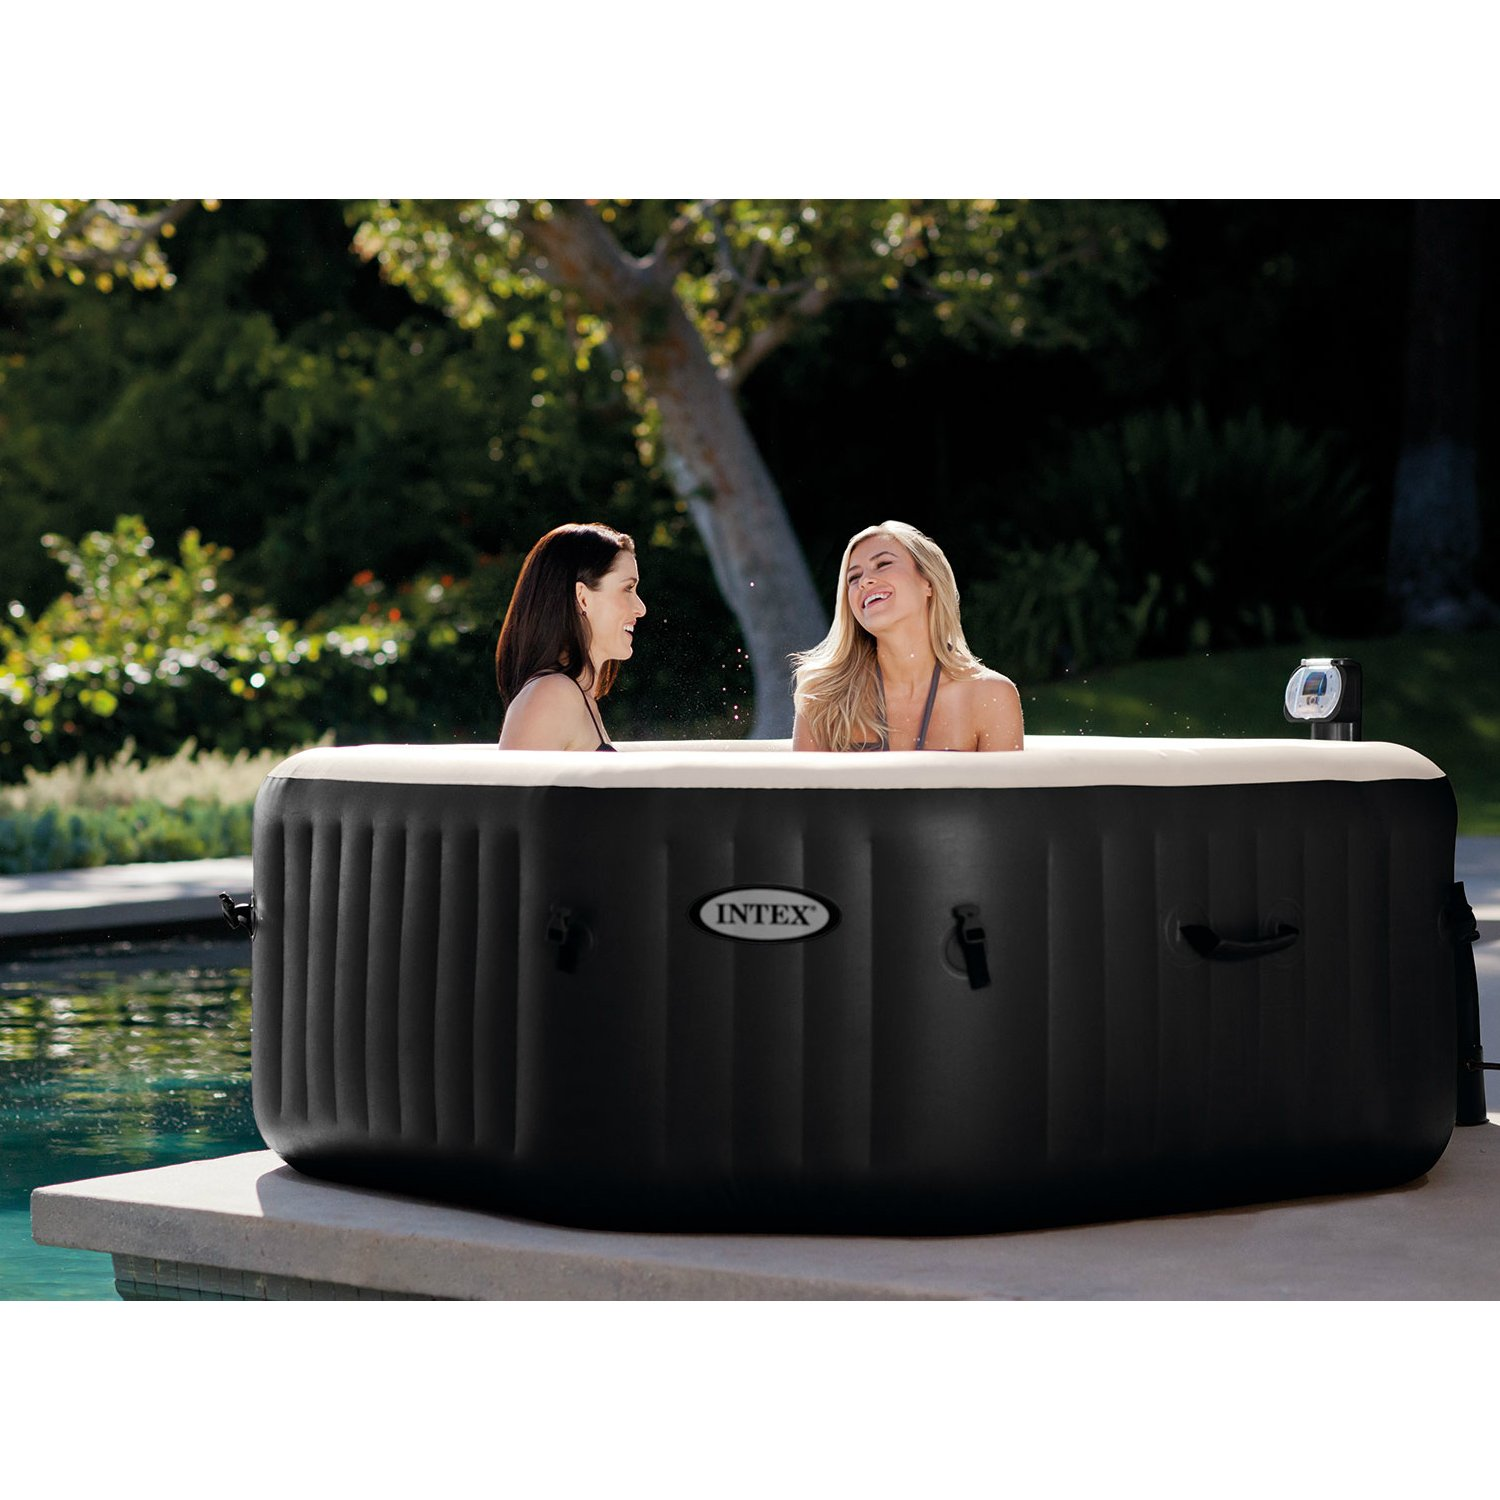 htm seater design j for hot tubs gallery ideas above rectangular ground tub sale indoor jacuzzi portable stunning decoration